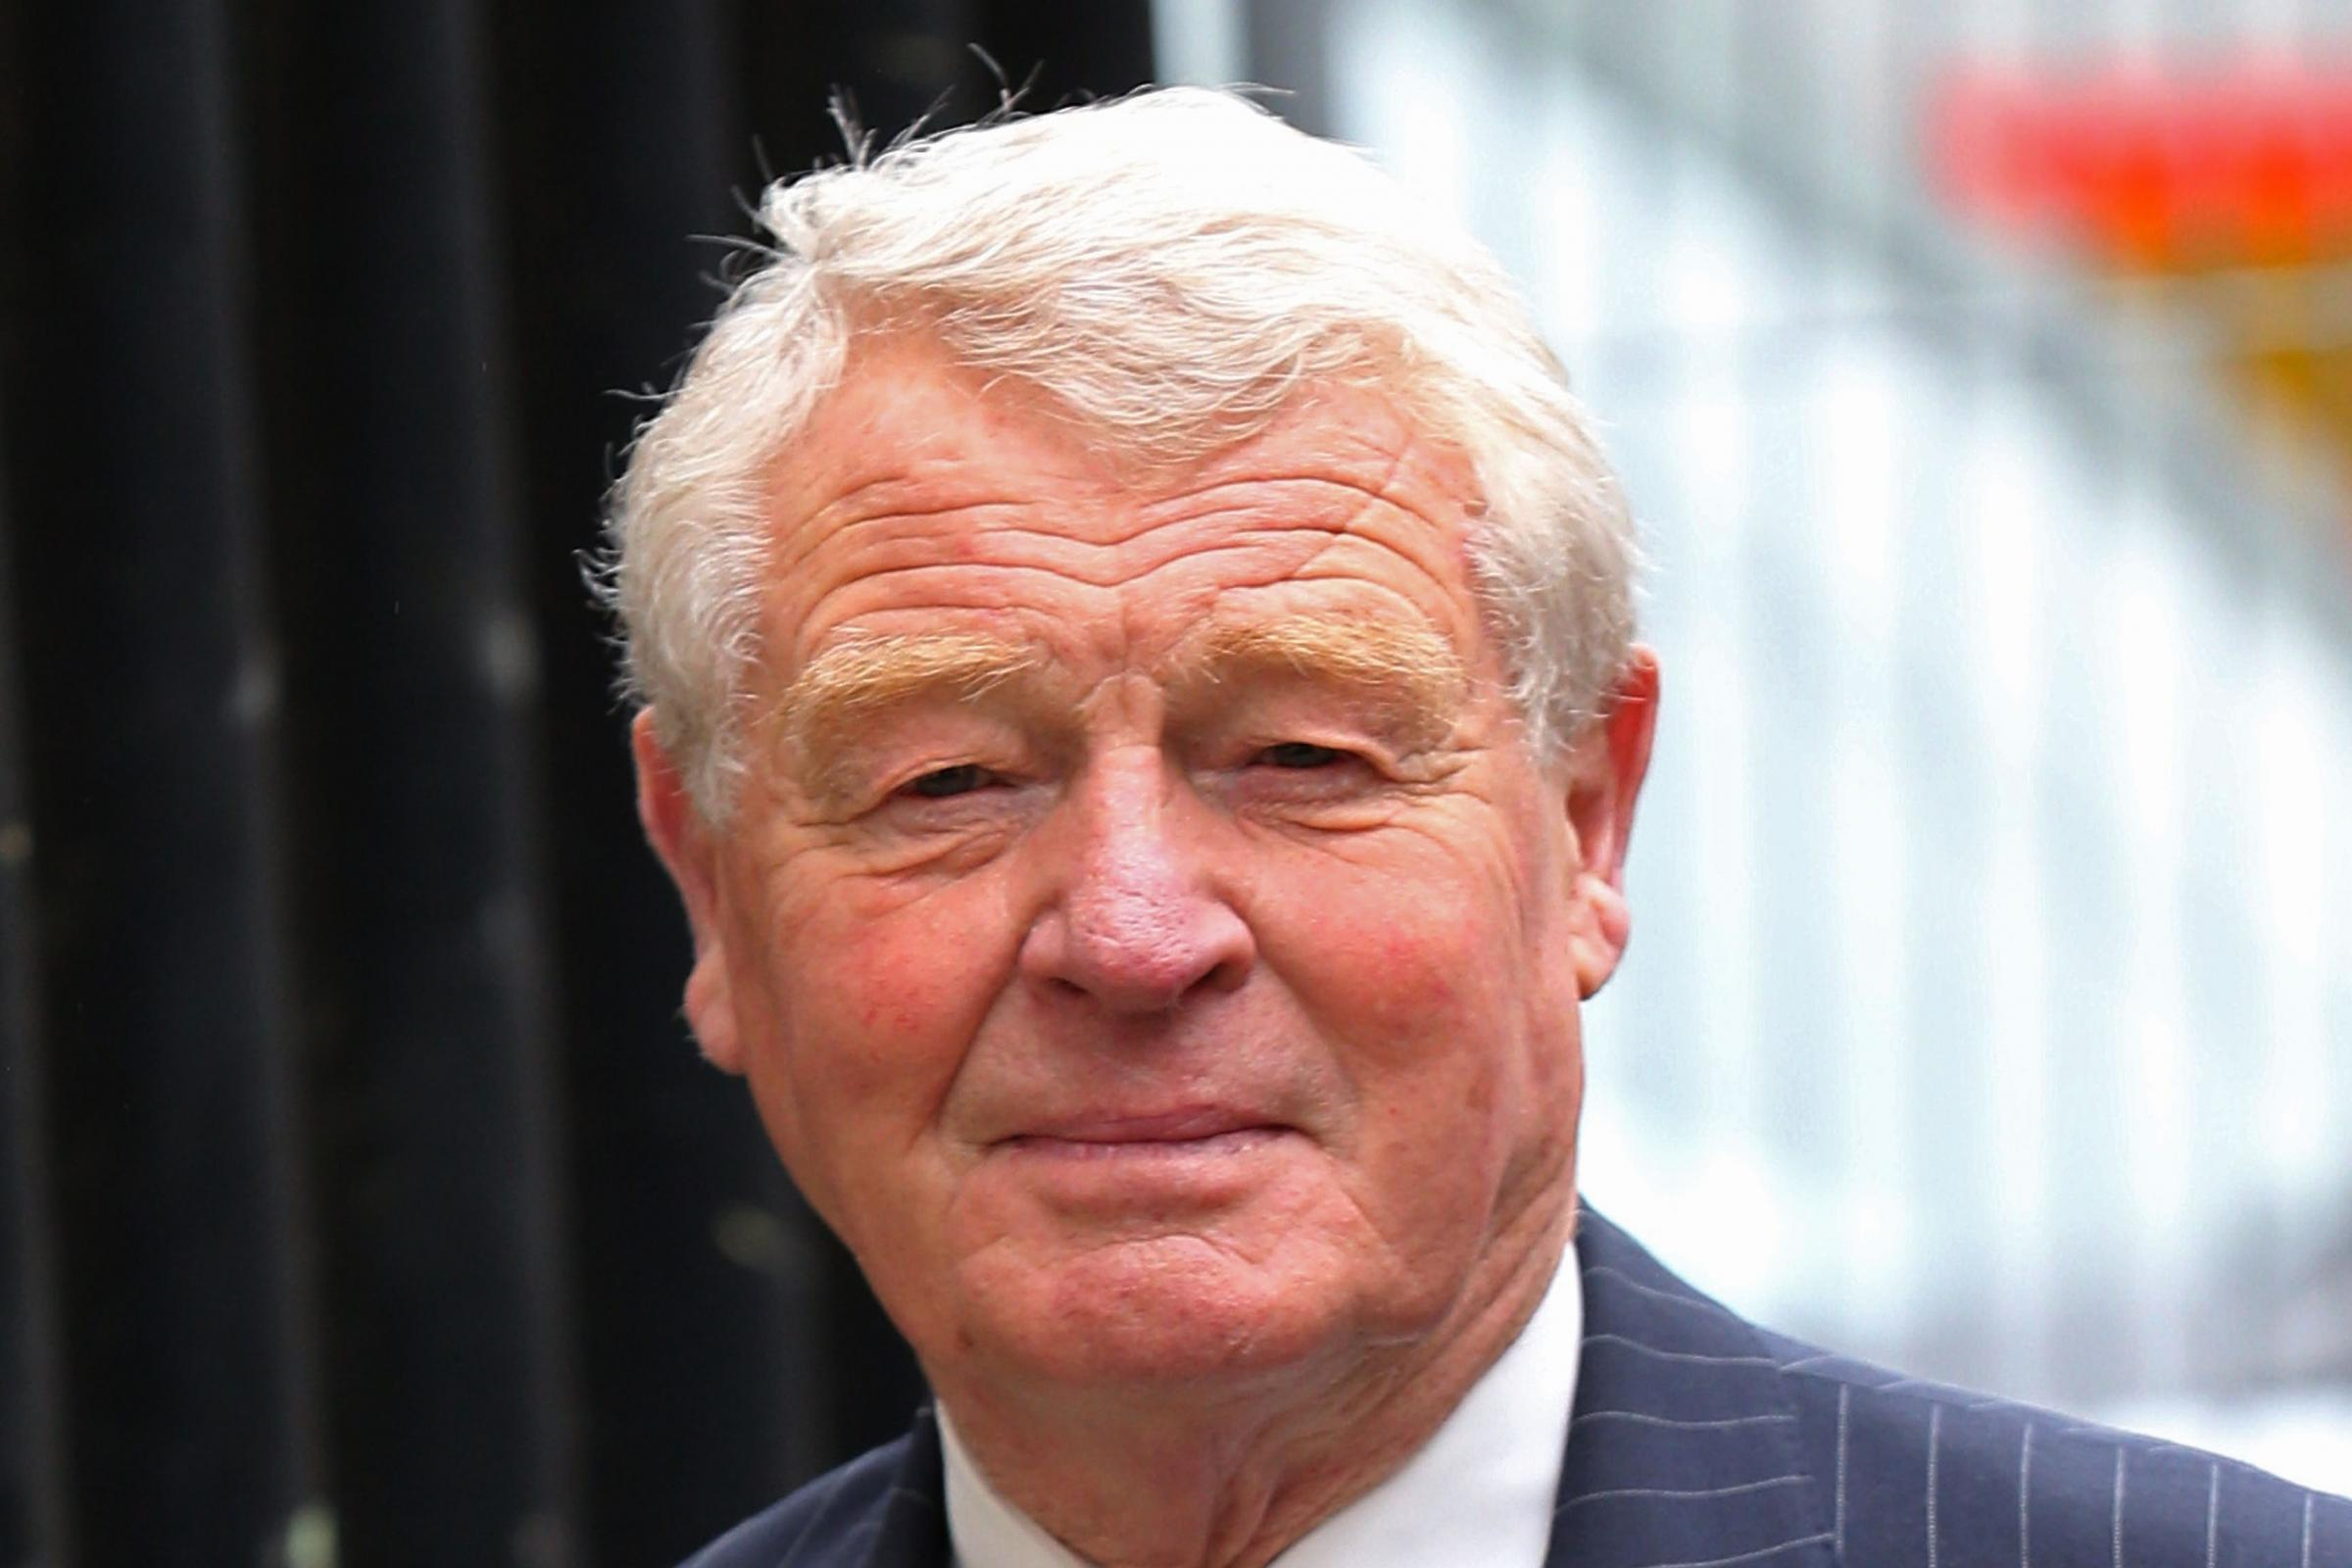 John Leech pays tribute to Paddy Ashdown